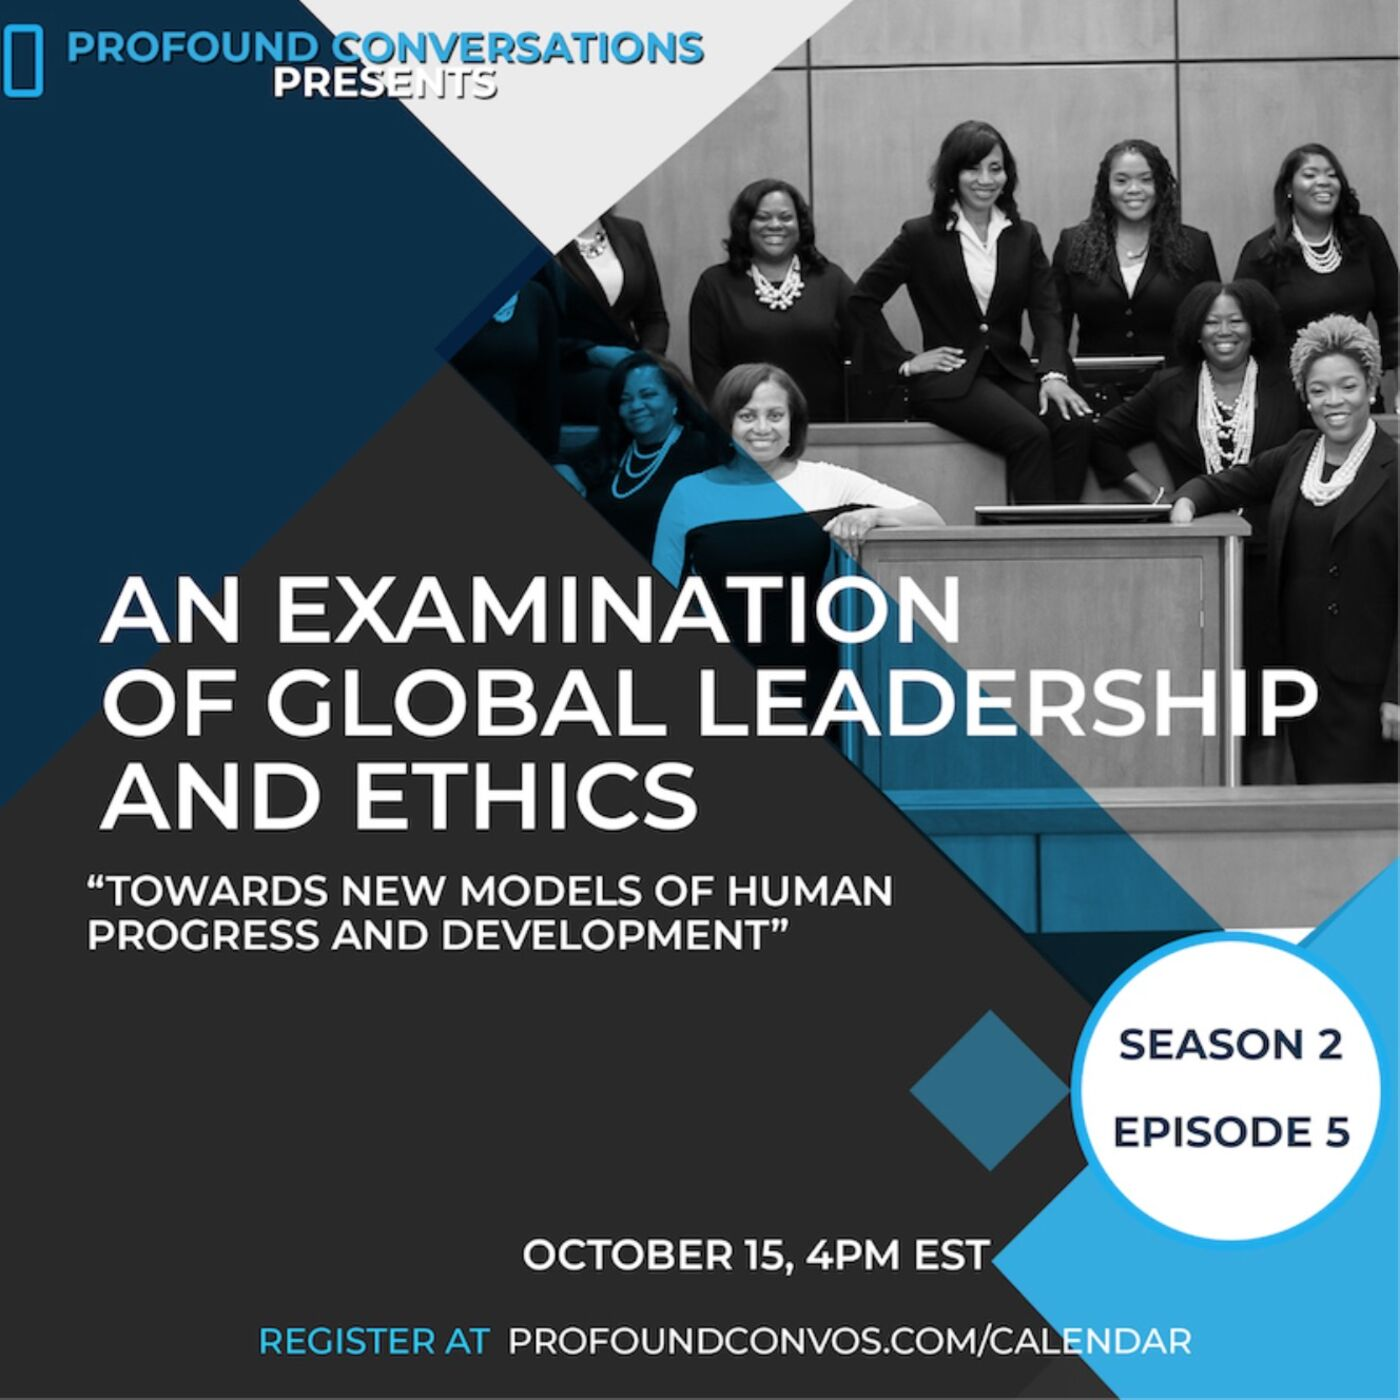 An Examination of Global Leadership and Ethics: Towards New Models of Human Progress and Development